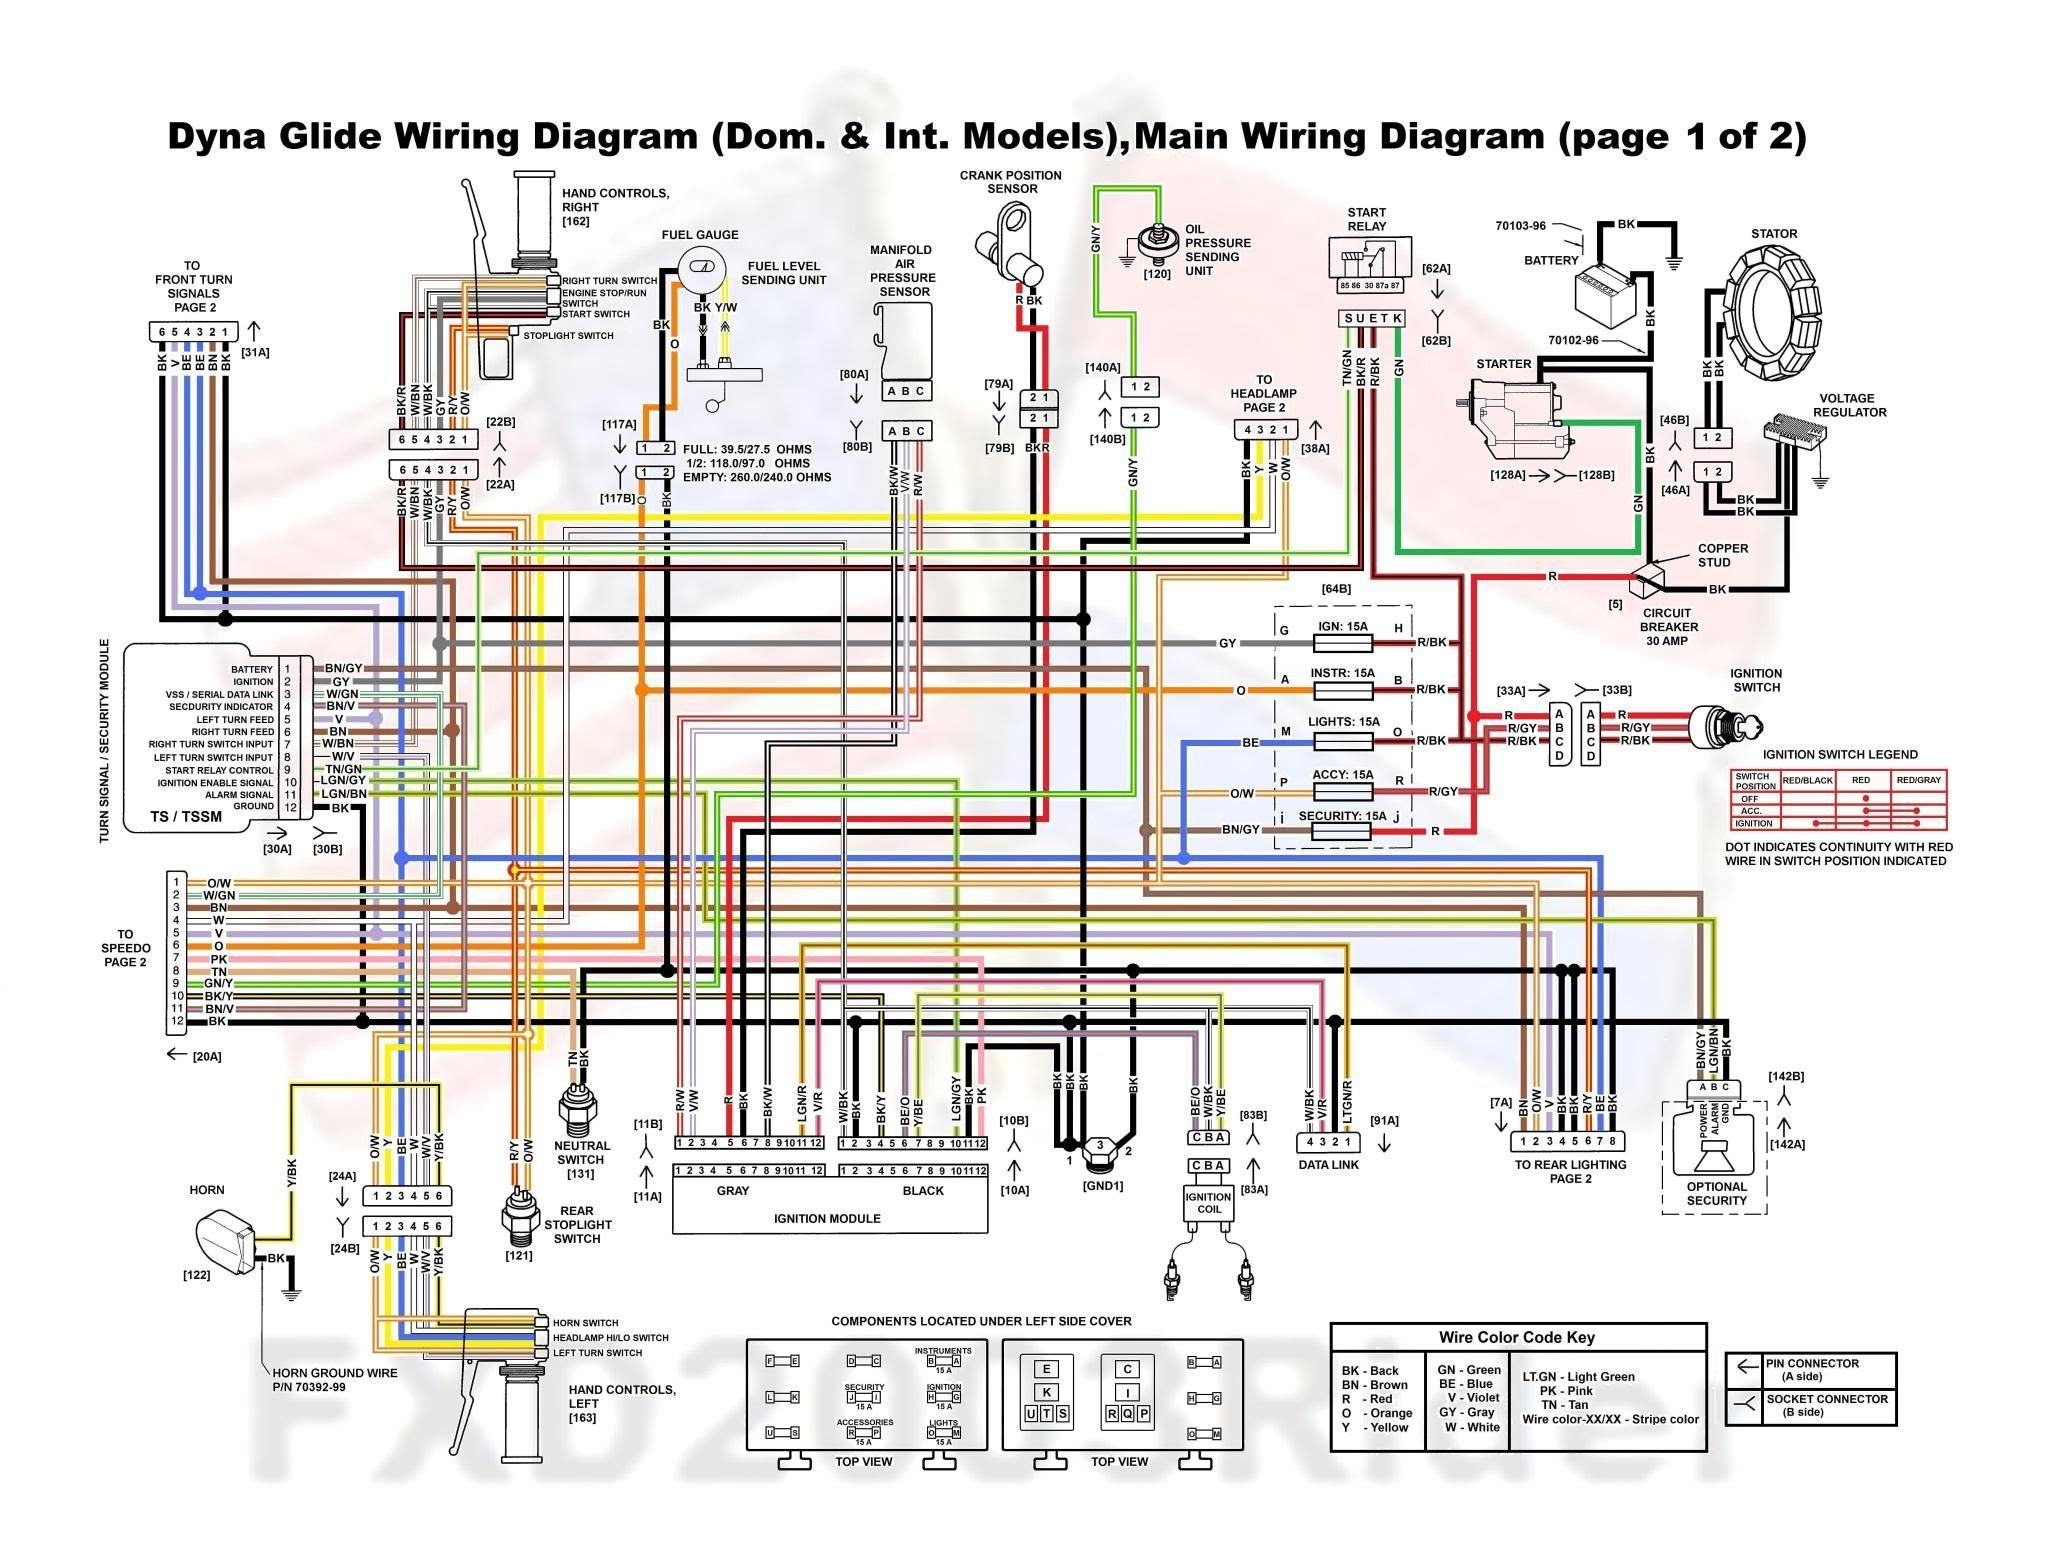 basic wiring diagram for harley davidson wiringdiagram org rh pinterest com Simple Harley Wiring Diagram Harley Wiring Diagrams PDF